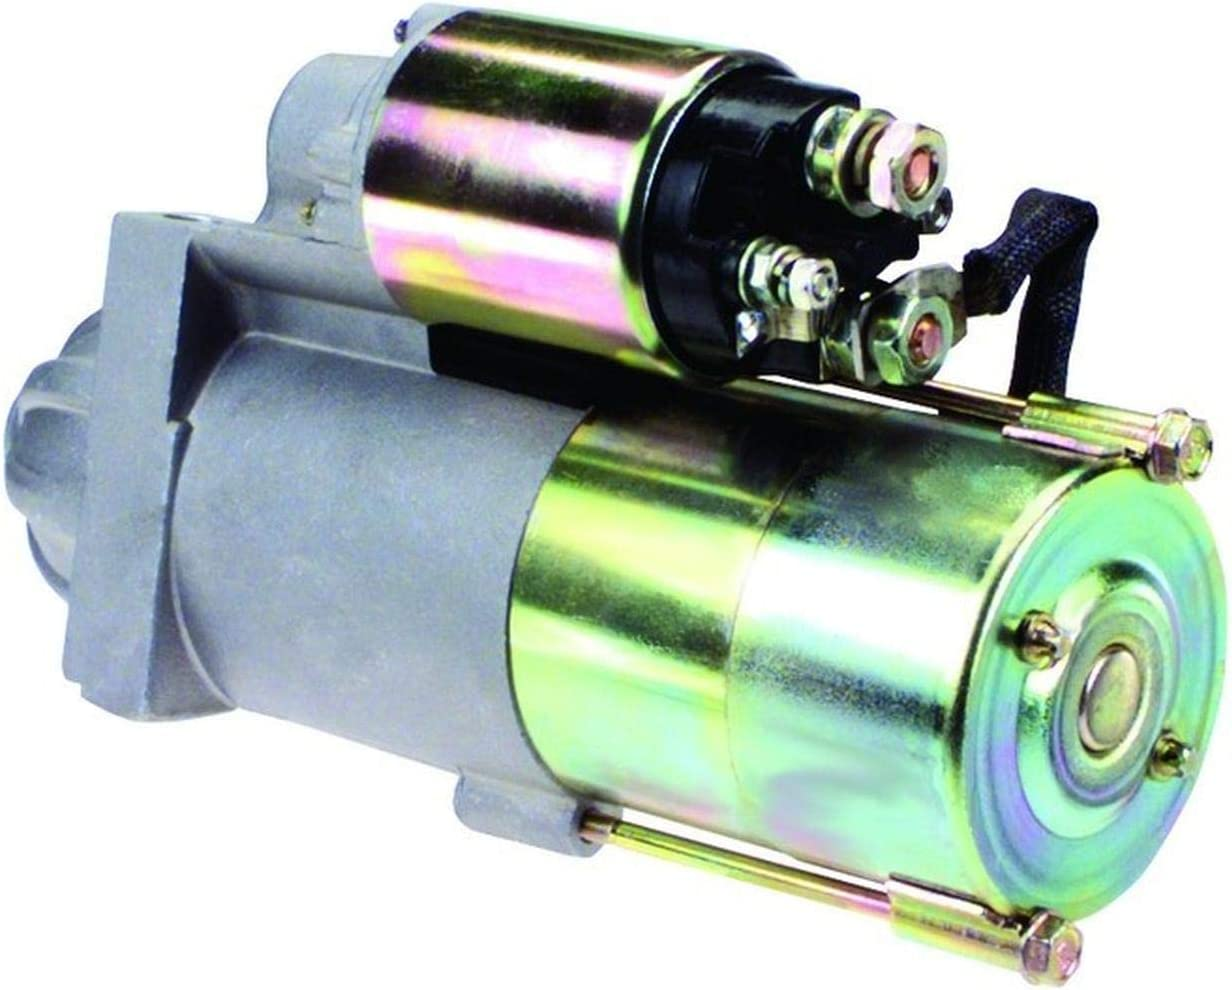 PREMIER GEAR PROFESSIONAL GRADE ENGINEERED FOR QUALITY PGEU-3510-PG Starter